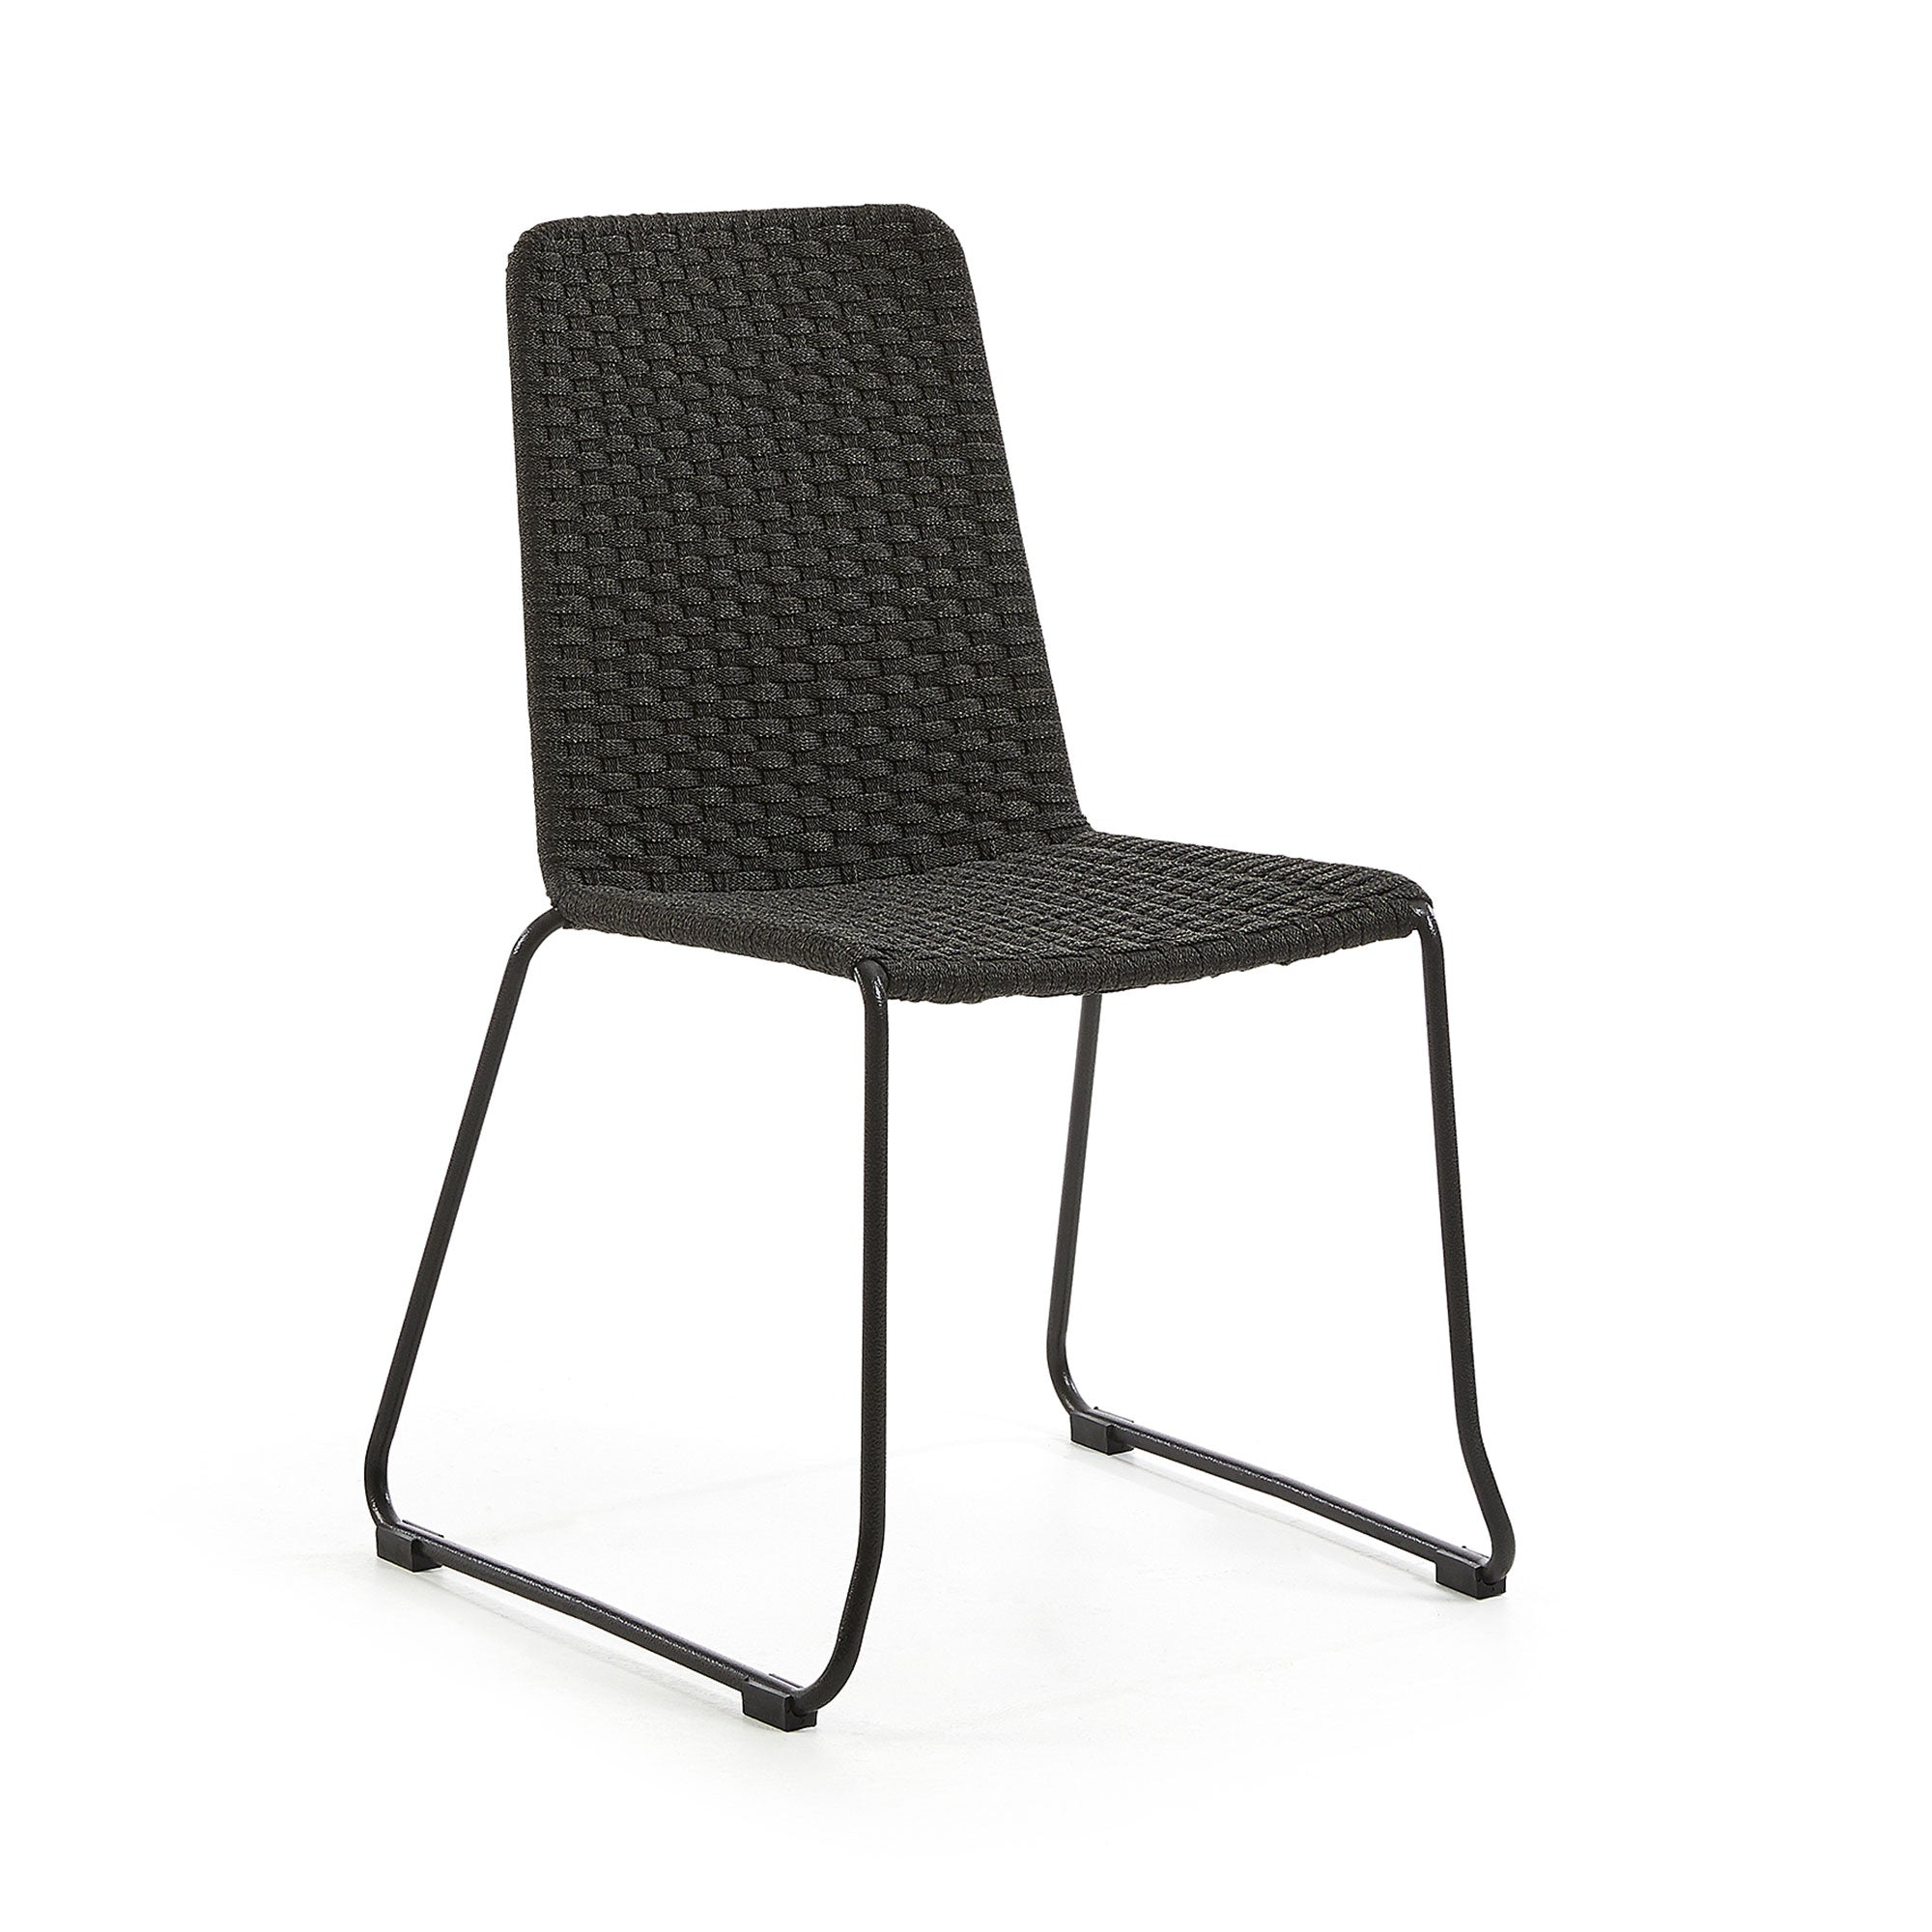 Moko Patio Chair | Charcoal